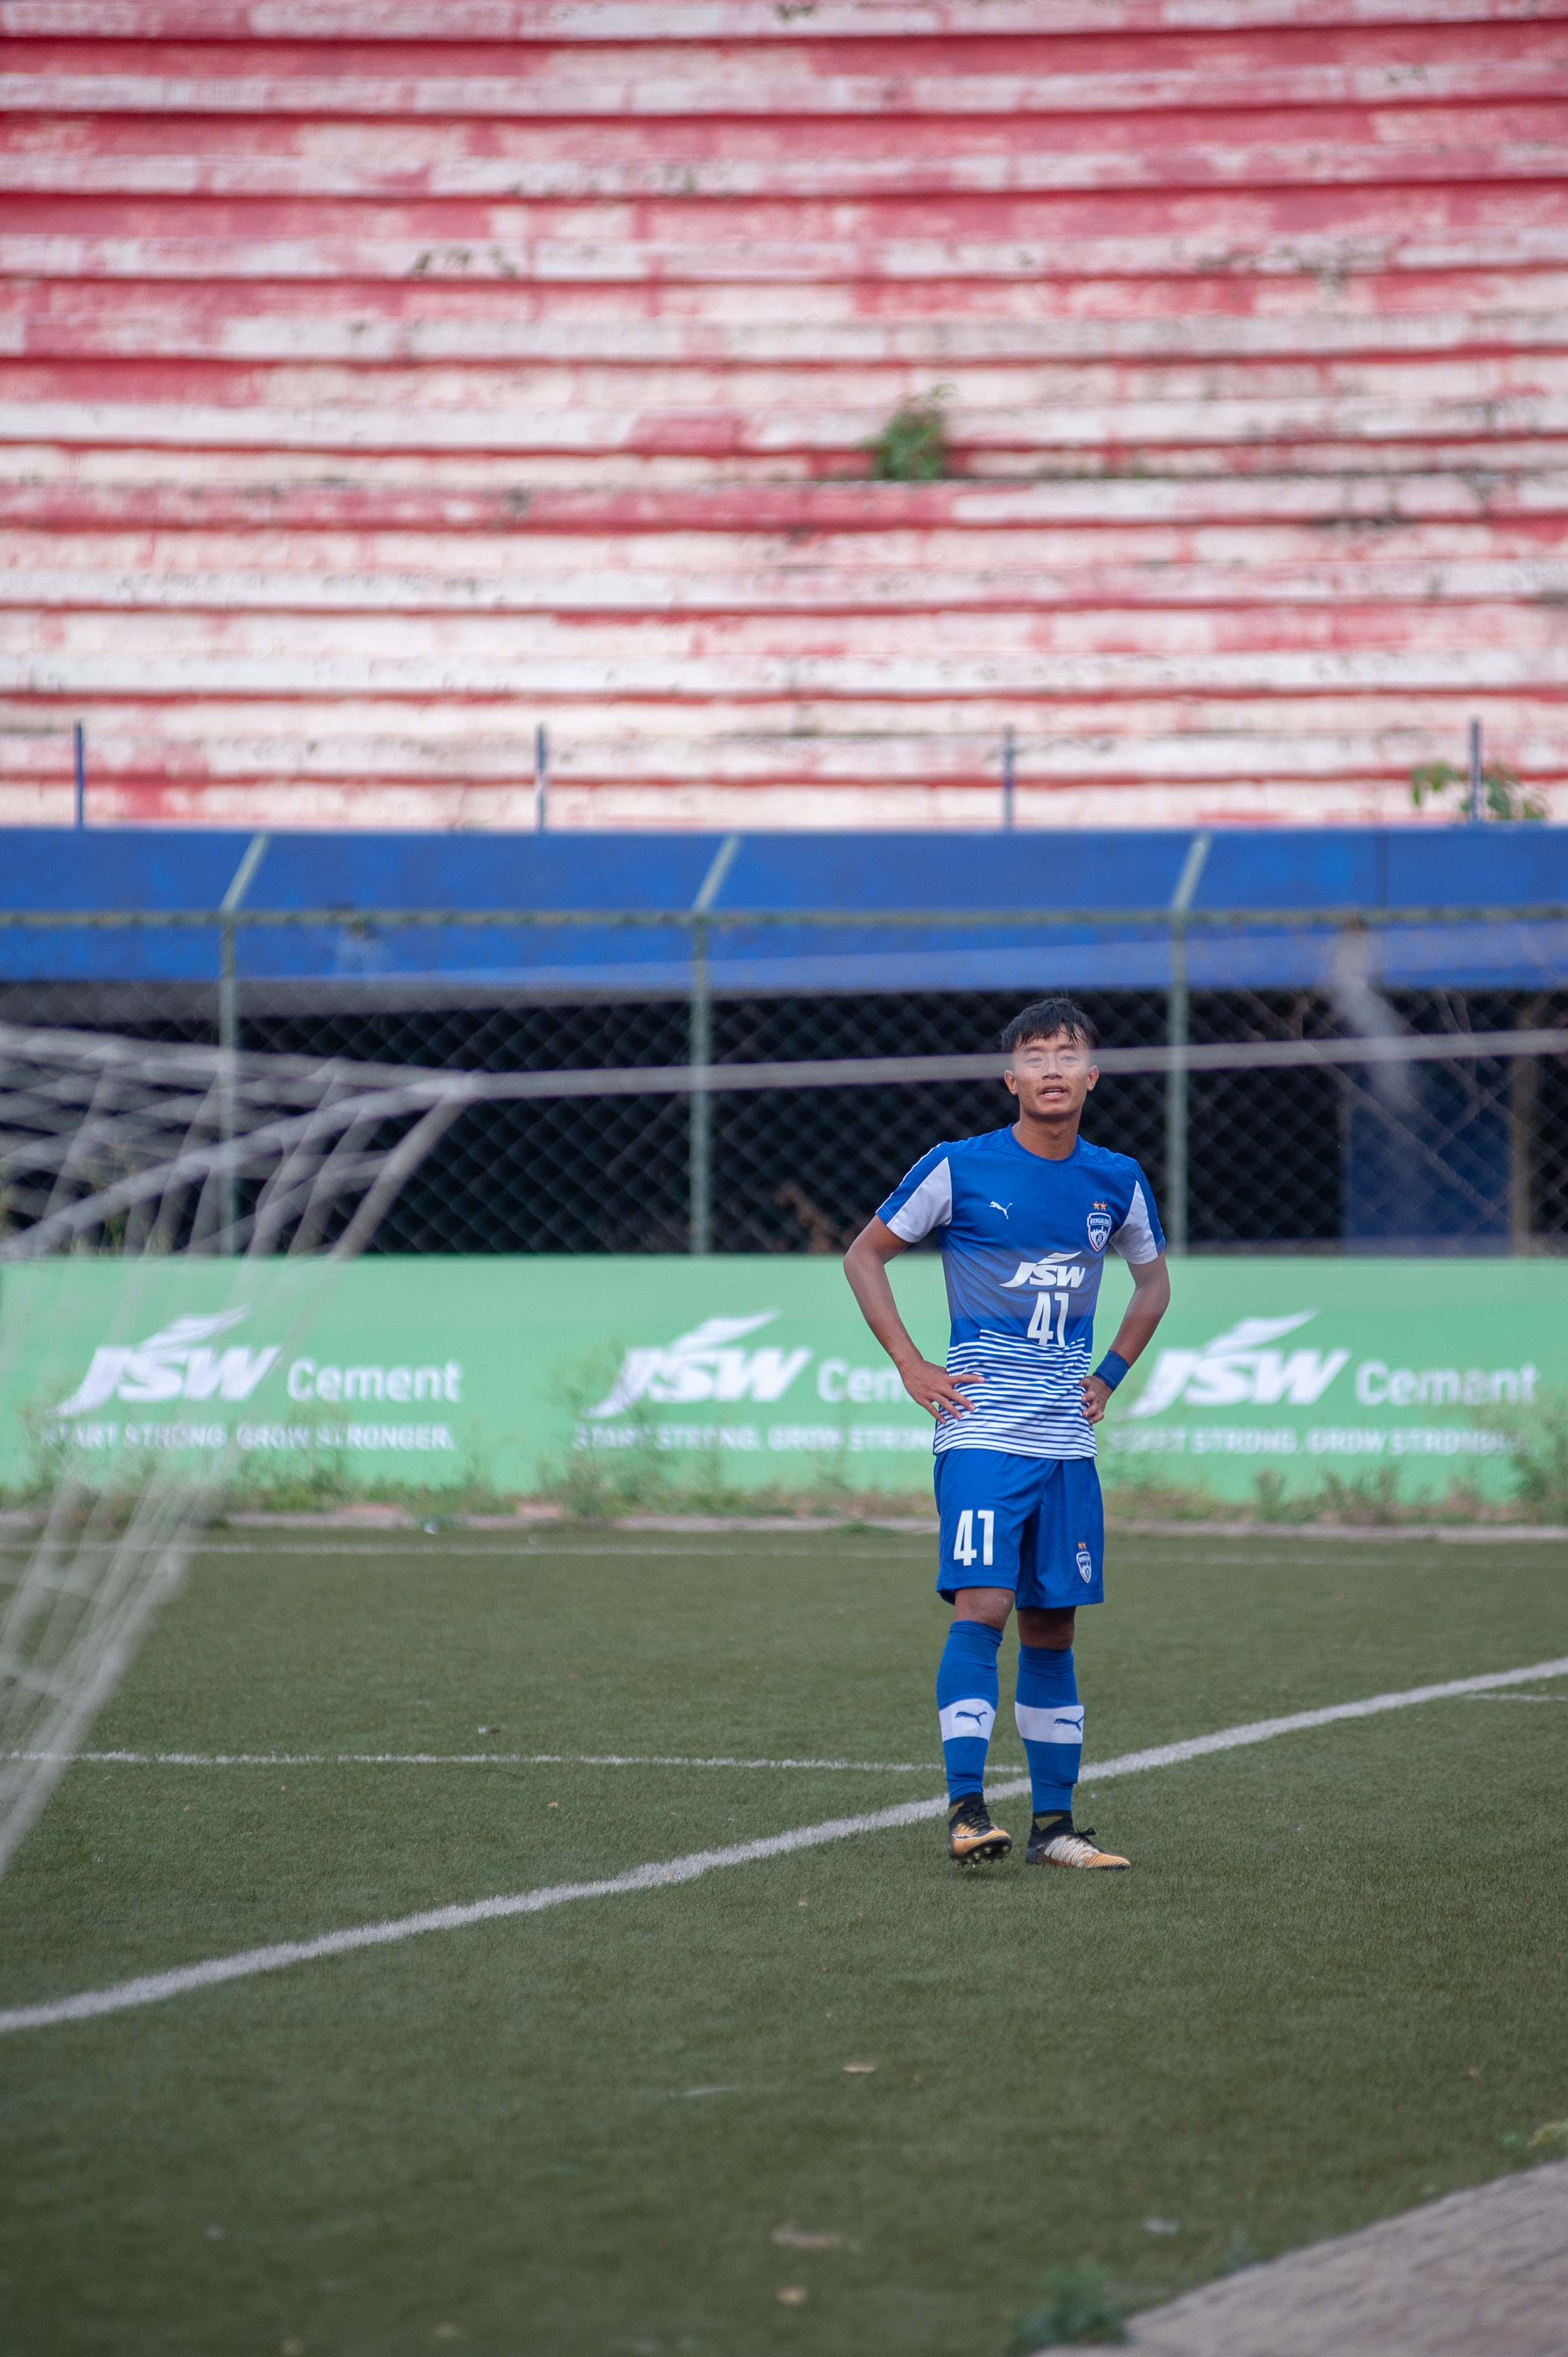 Naorem Roshan is seen standing behind the goal, dejected, after failing to hit the back of the net by a whisker.